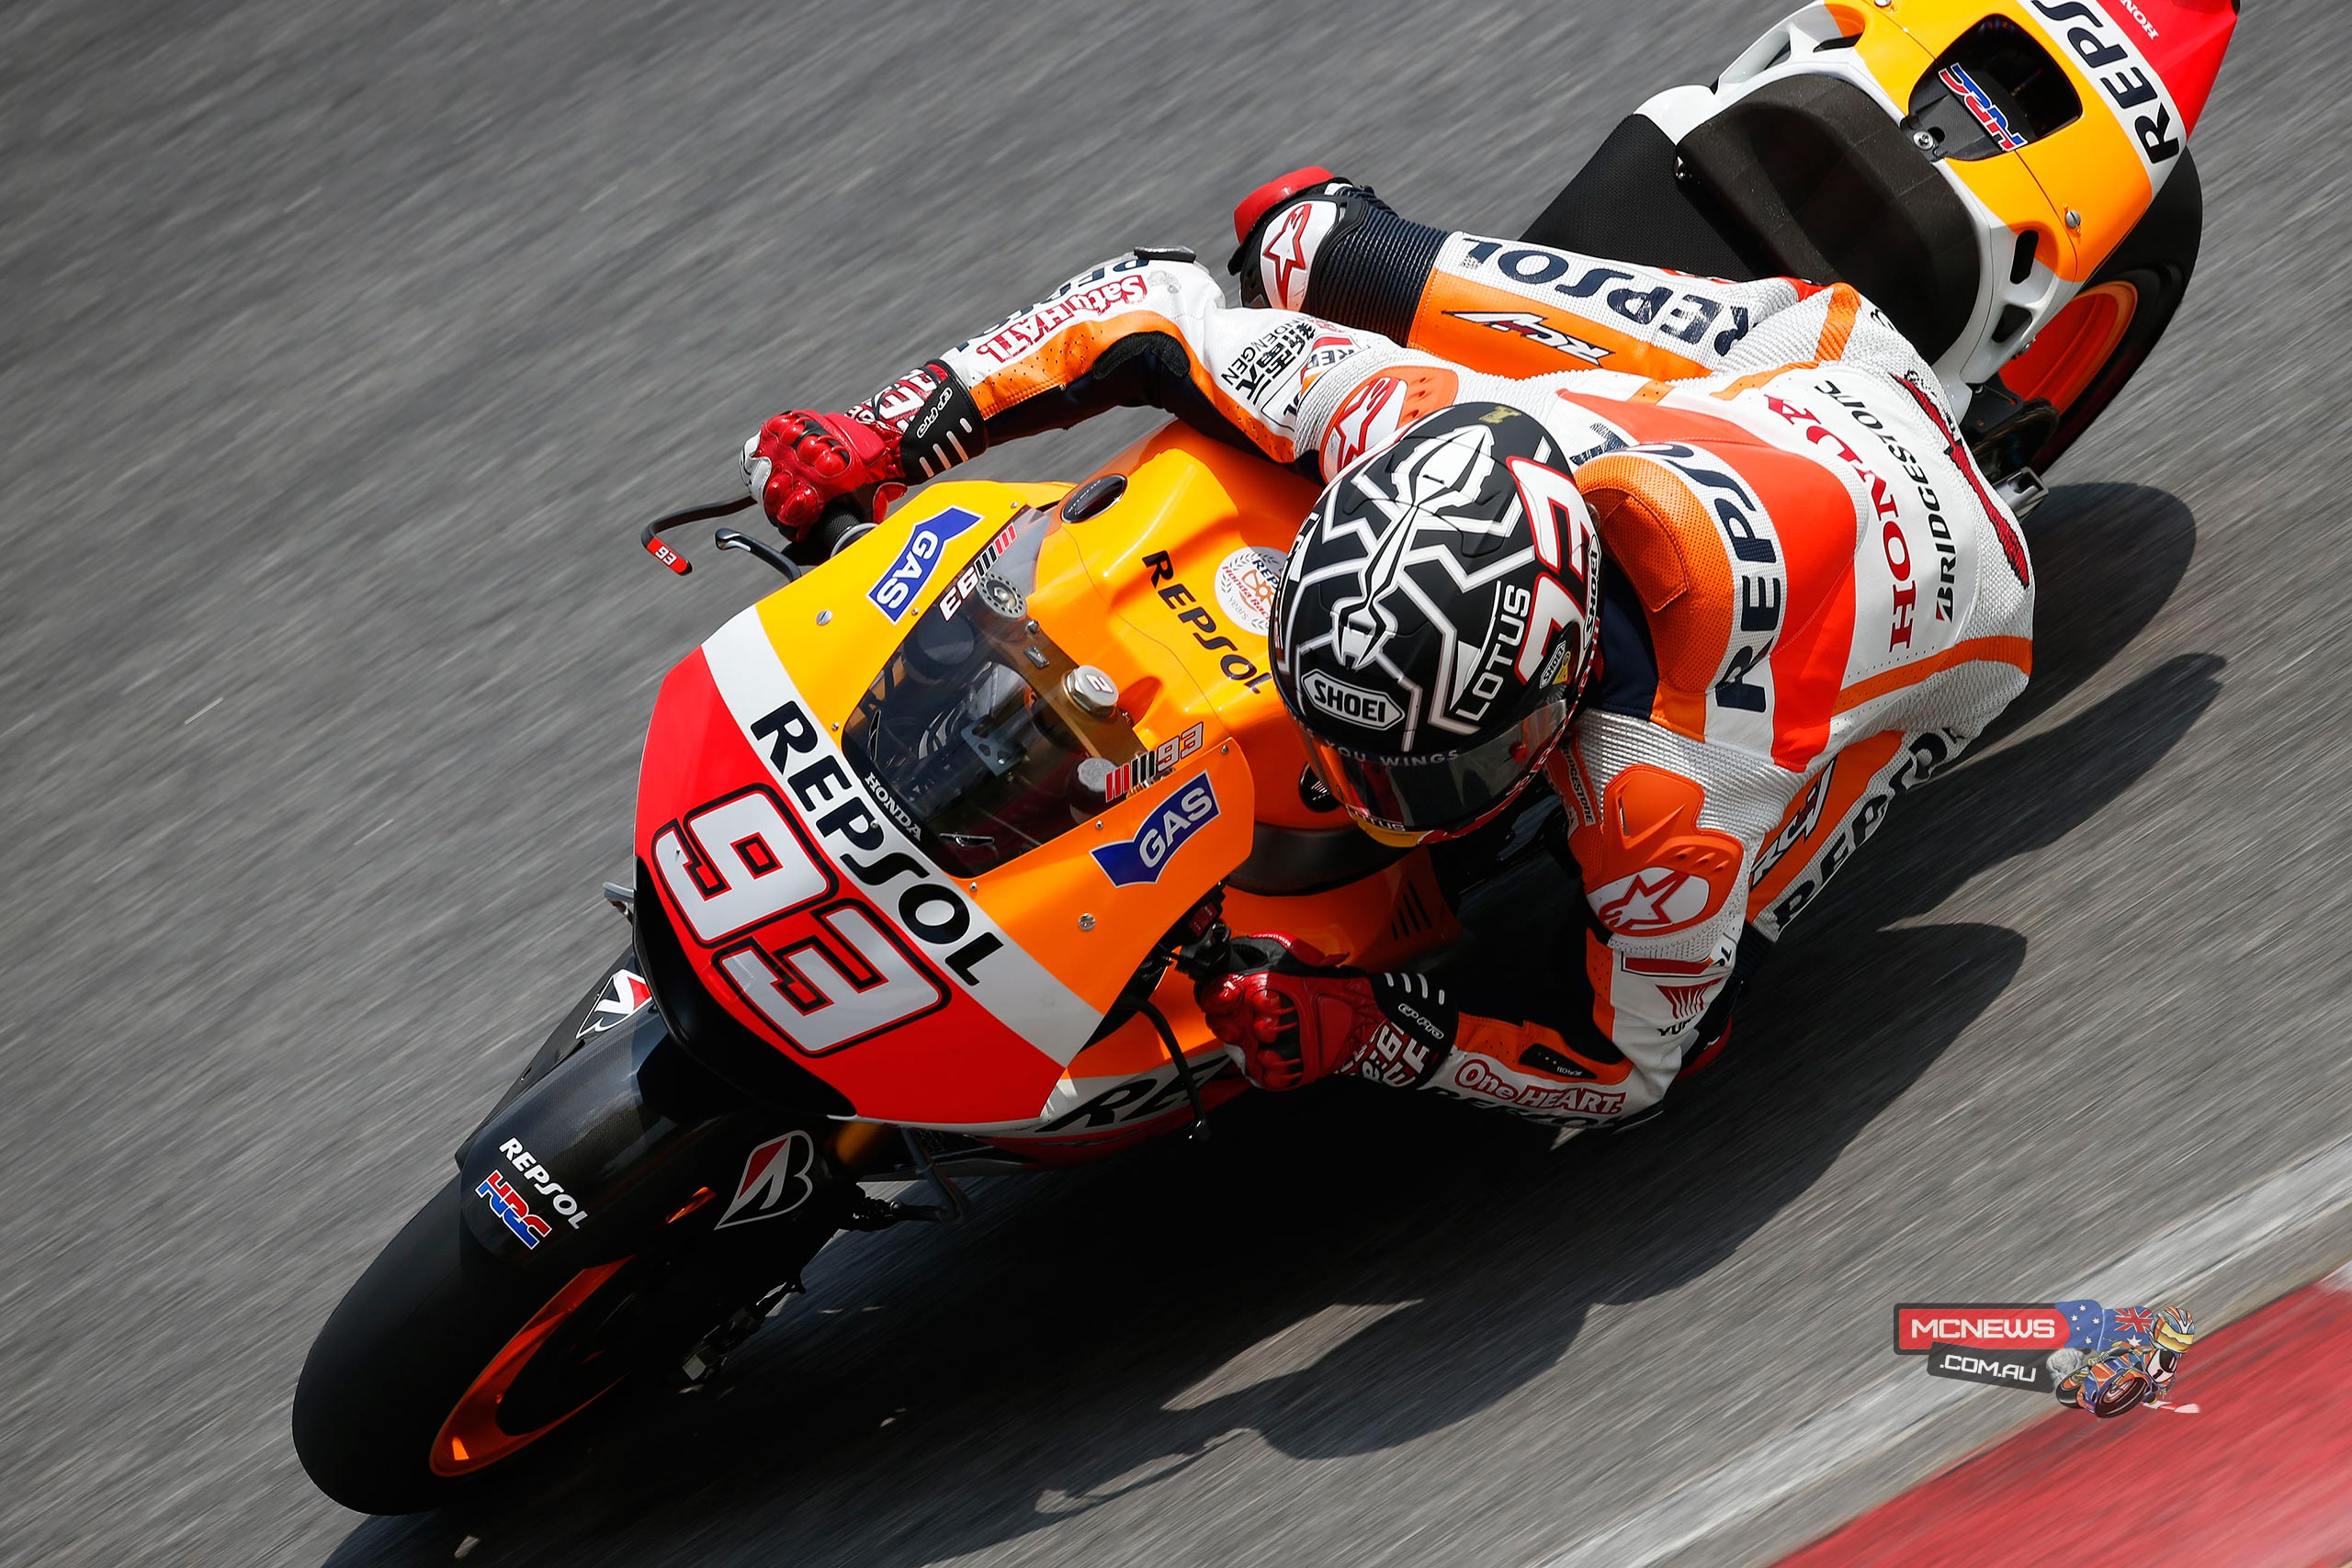 "Marc Marquez (Repsol Honda): 1st overall, 1m 59.533s ""I'm pretty happy with how the three days here in Sepang have gone and we have started the preseason well. It's true that this is only the first test and we still have work to do, but we've already been able to do a race simulation and it has all gone well. We have tried many set-ups and we have gathered a lot of data, so we will be well prepared for the next test here. We still have some things to try out, so we must make the most of the days we have remaining here this preseason. Physically I feel good, I haven't stopped over this past month and have had a packed schedule, but I have been able to continue training. I was a little weak here when I arrived, because I had the flu last week, but in the end I felt fine which, is the most important thing. We can always improve and this test will help me to up my fitness."""